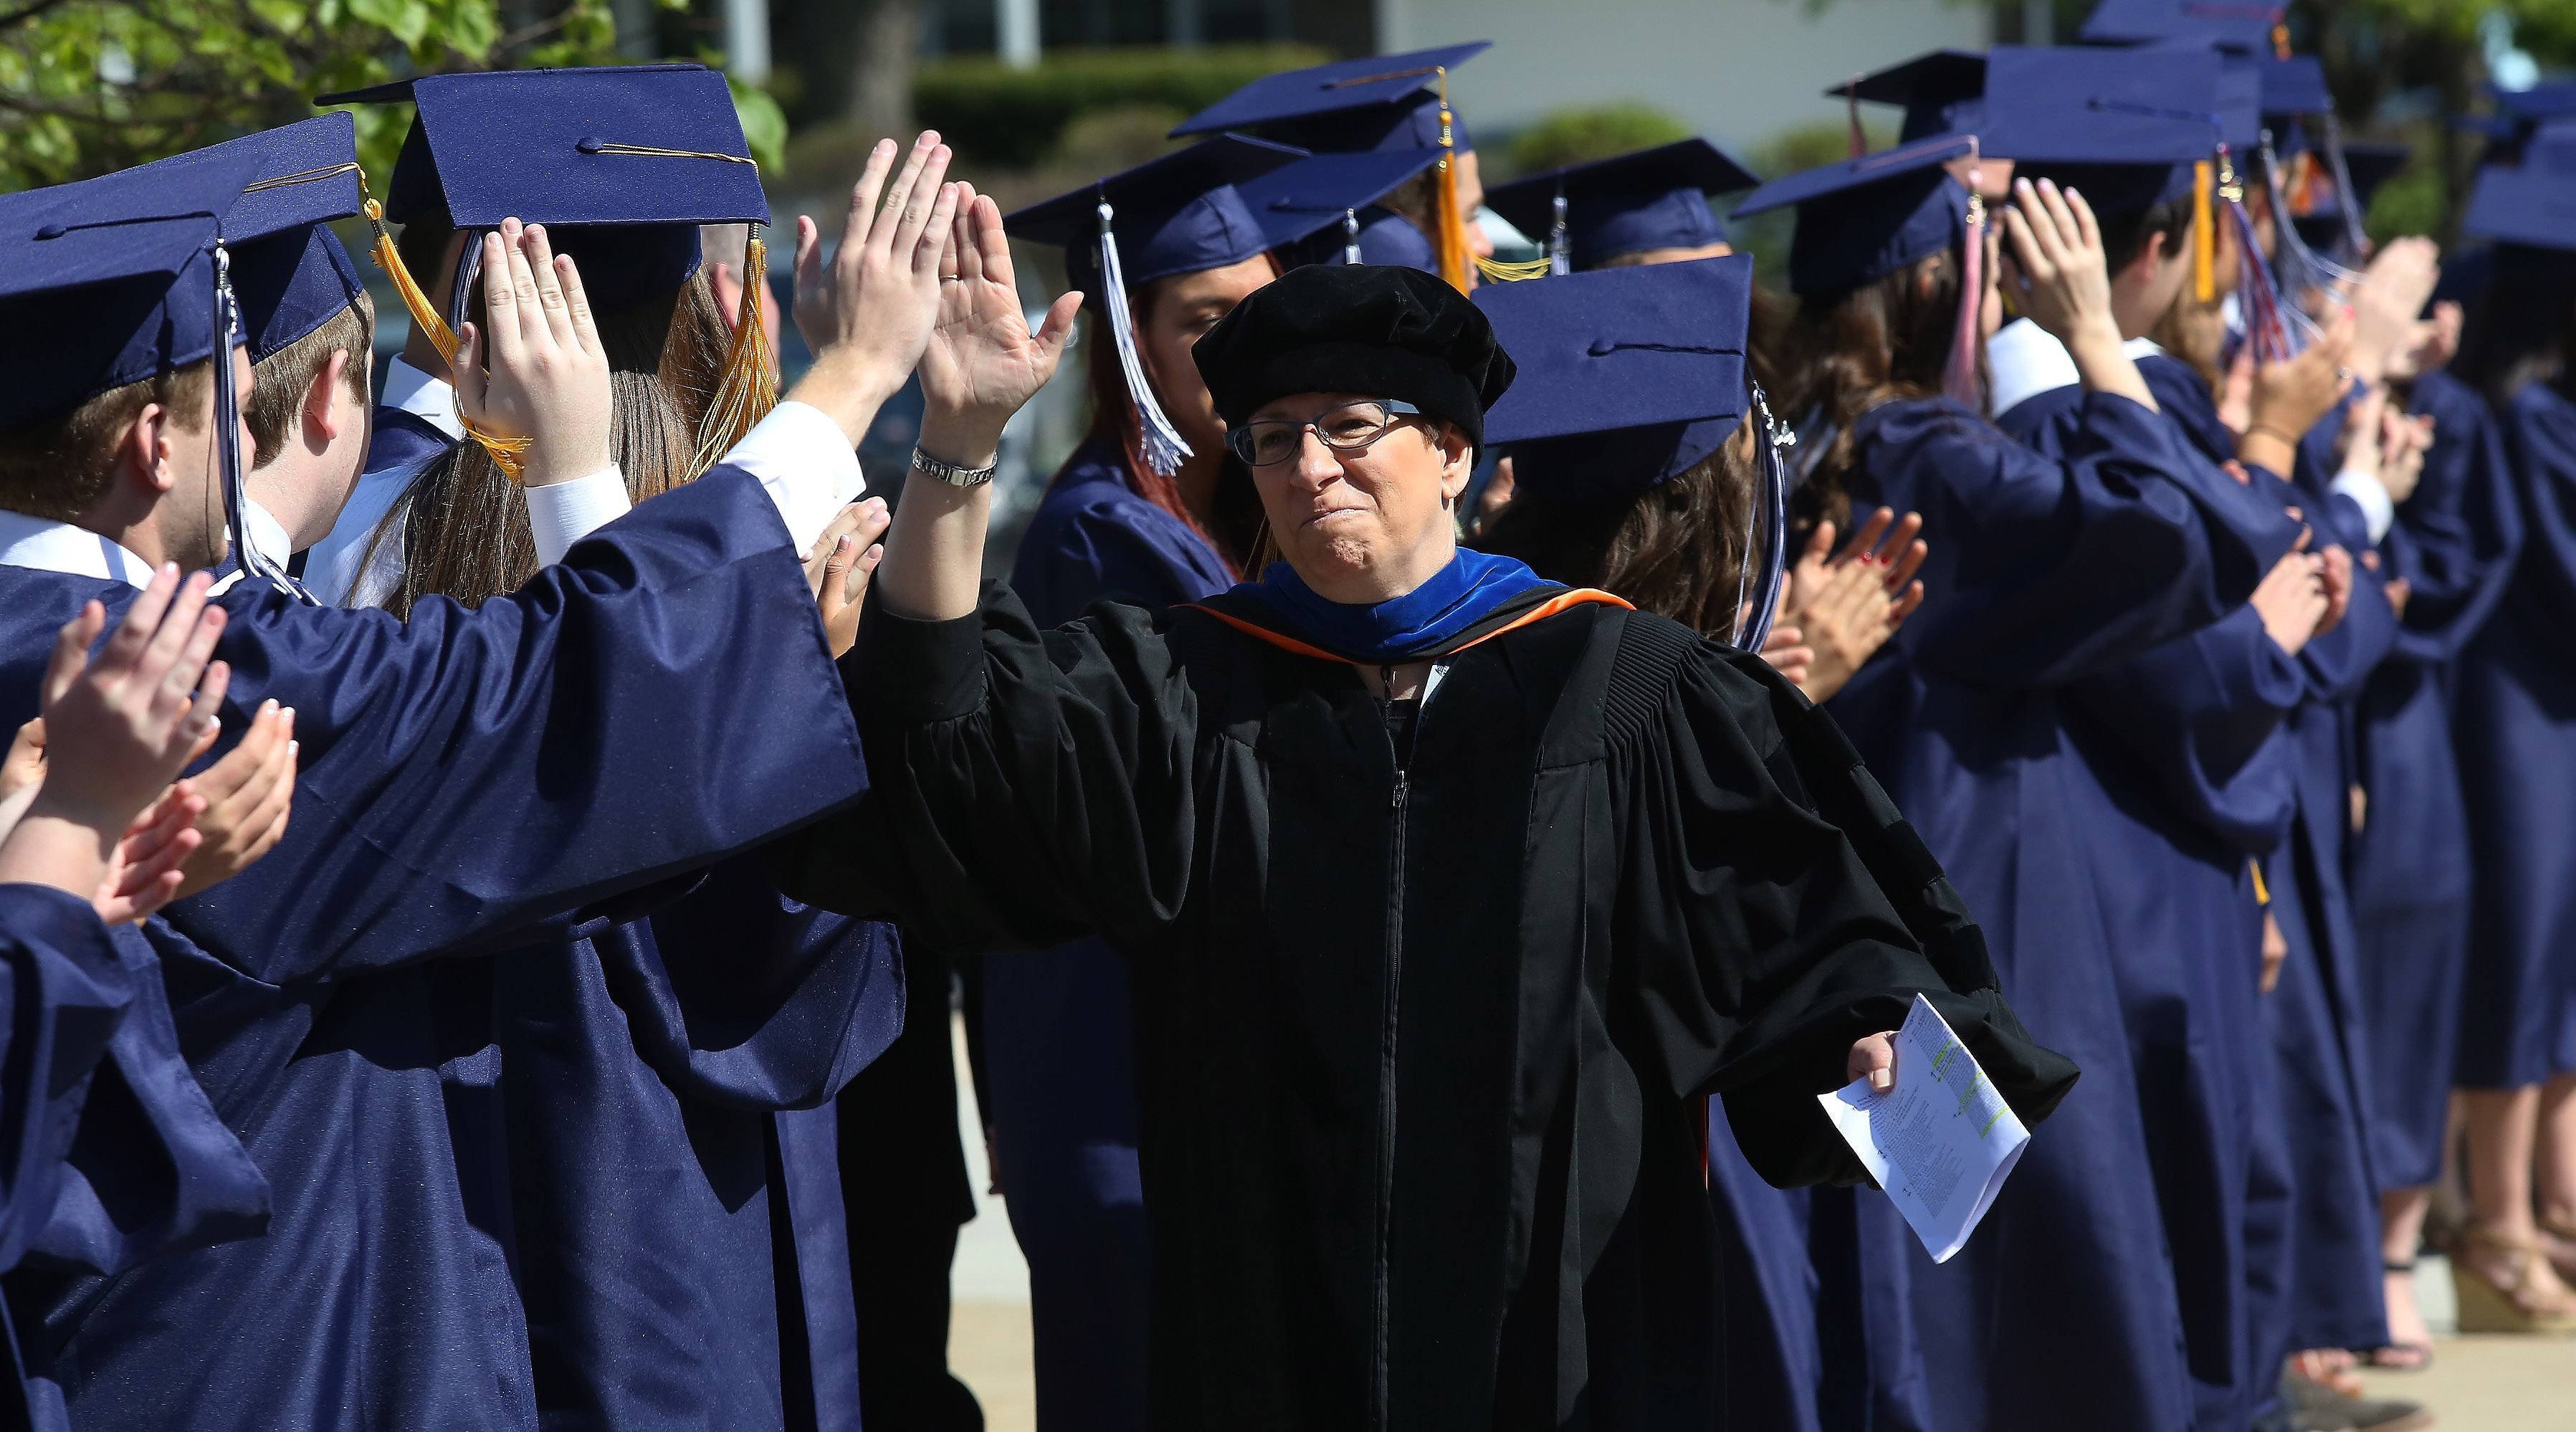 Faculty member Dr. Deborah Scerbicke is congratulated by students during the procession of the 51st Annual Commencement Sunday at St. Viator High School In Arlington Heights. There were 250 graduating seniors receiving their diplomas this year.